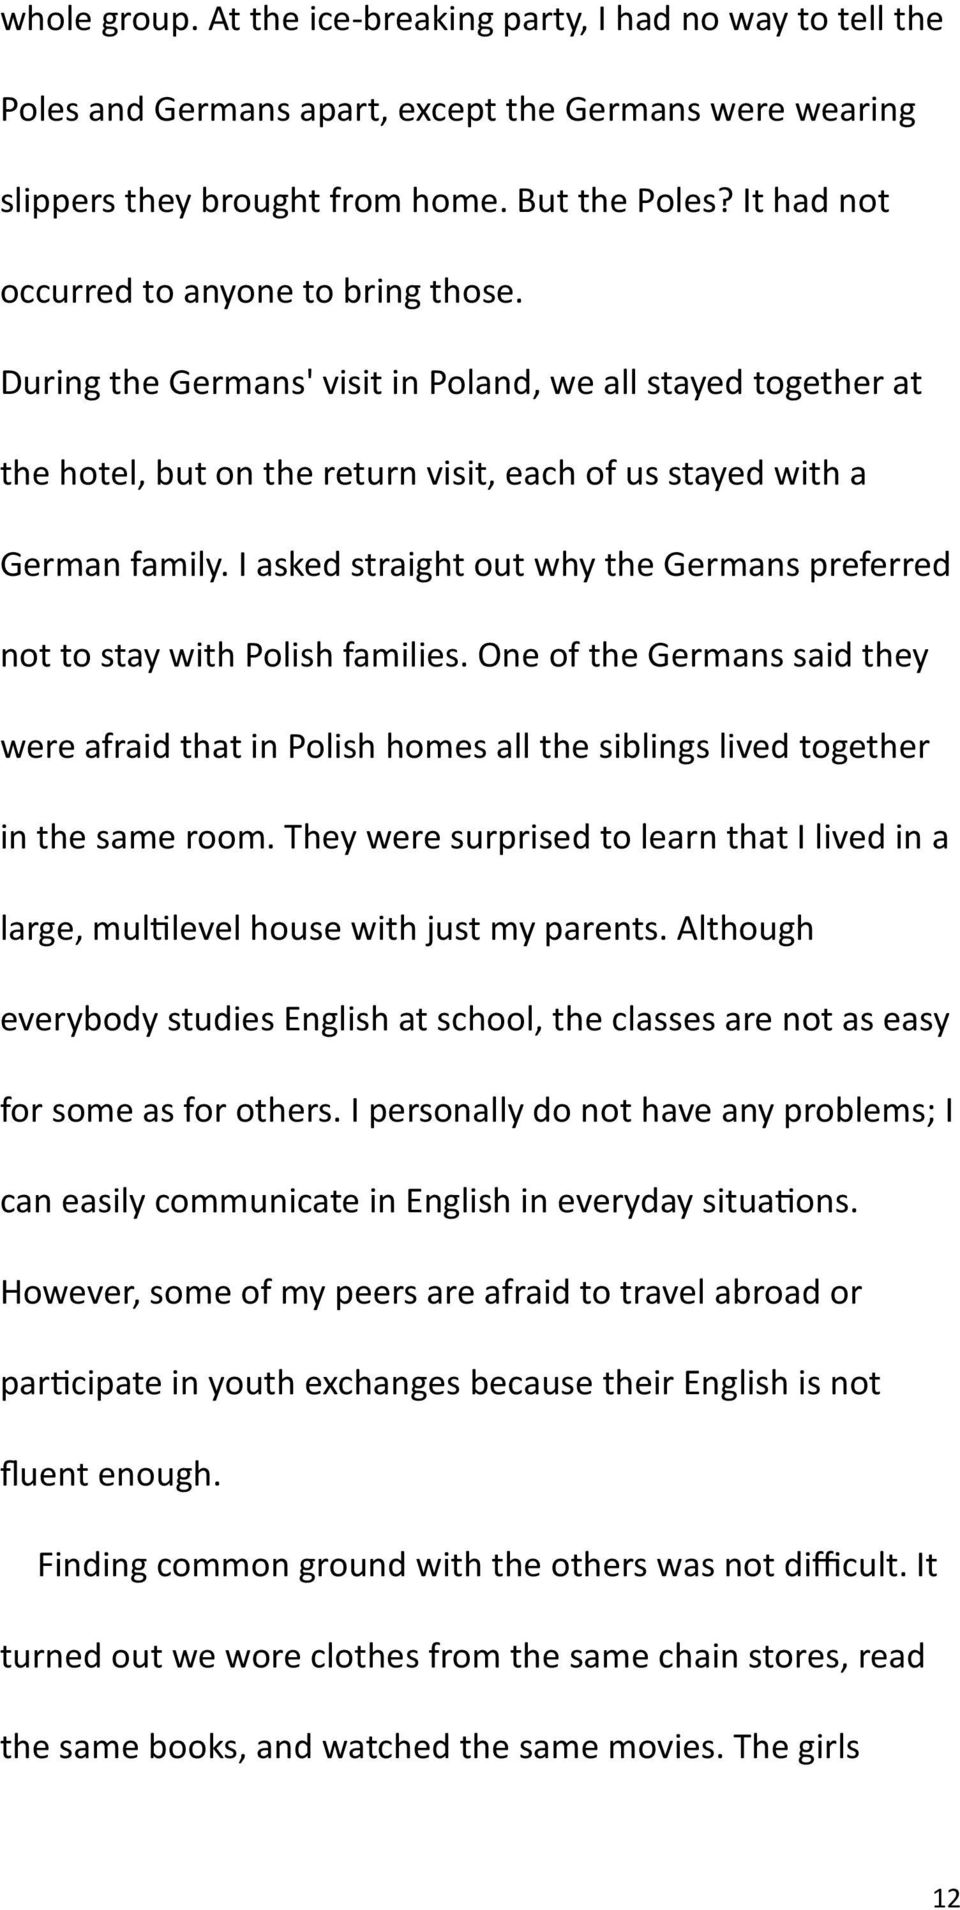 I asked straight out why the Germans preferred not to stay with Polish families. One of the Germans said they were afraid that in Polish homes all the siblings lived together in the same room.